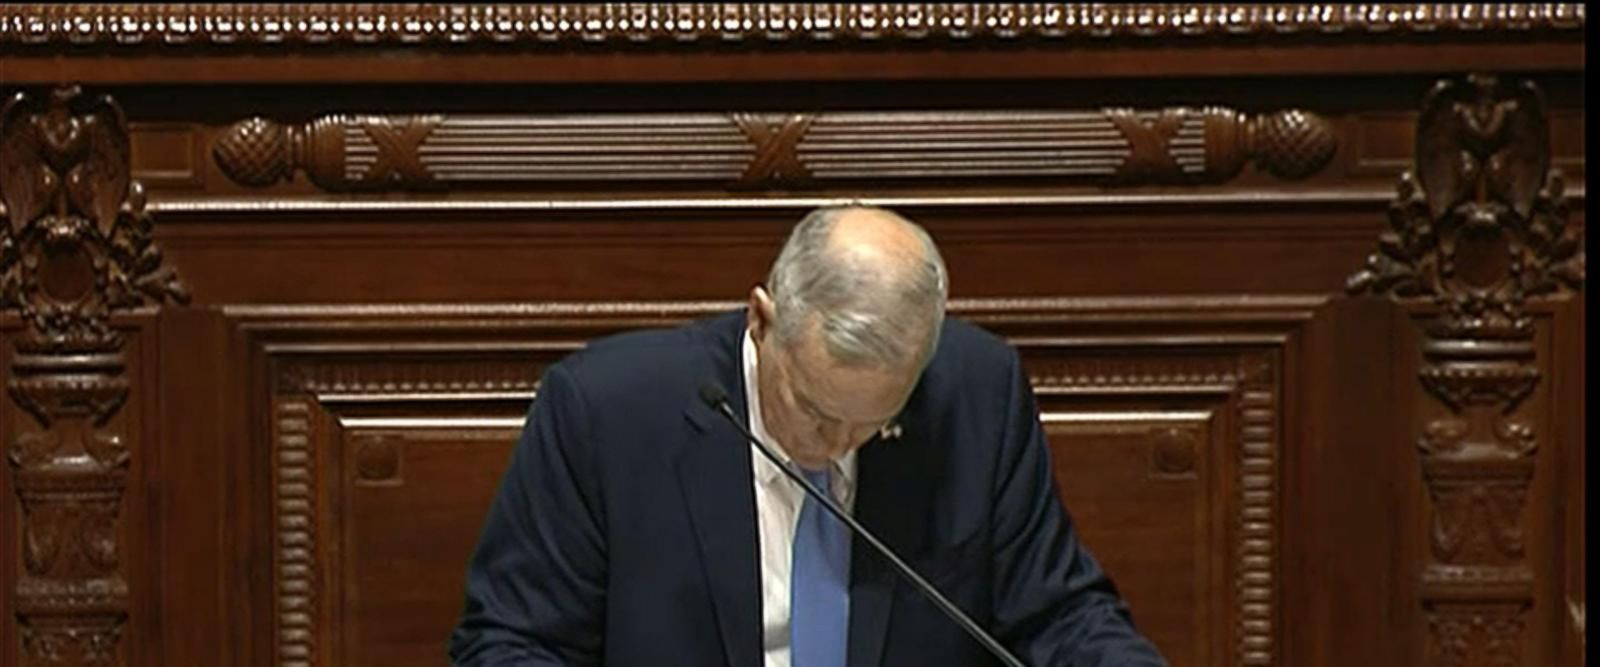 VIDEO: Minnesota Gov. Mark Dayton Collapses During State of the State